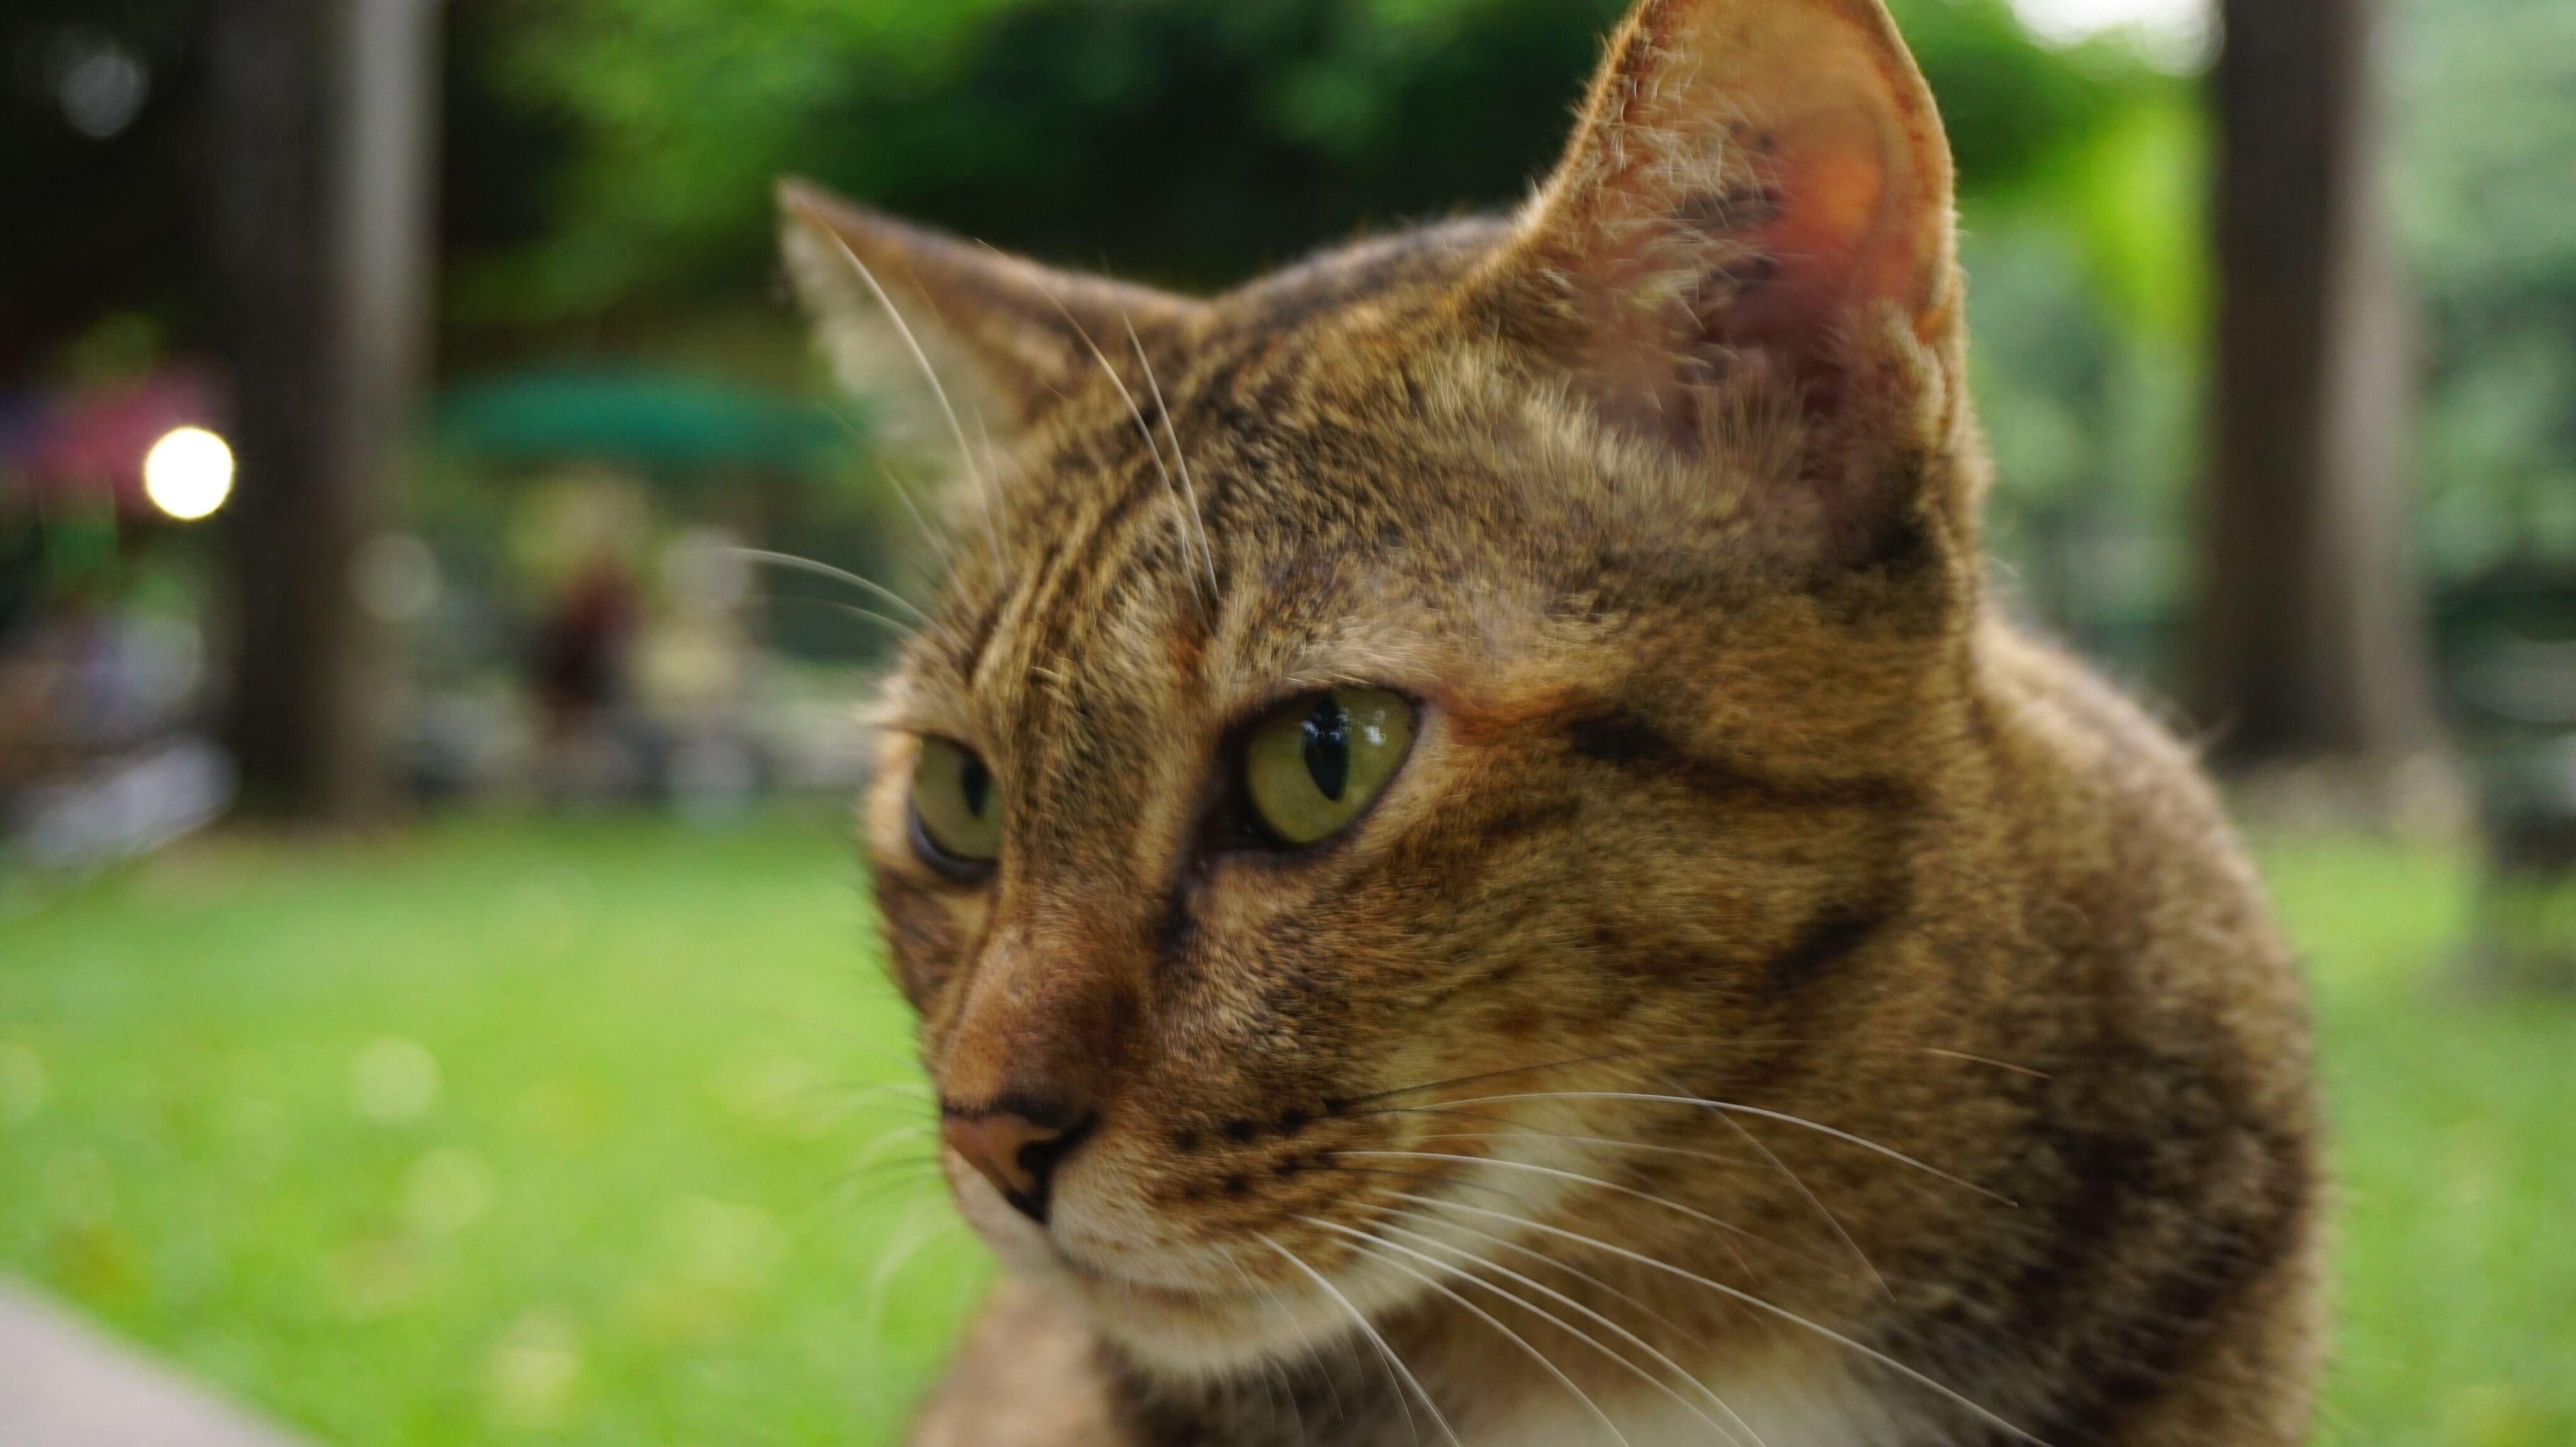 one animal, animal themes, domestic cat, pets, domestic animals, cat, close-up, looking away, mammal, whisker, animal head, feline, curiosity, alertness, focus on foreground, animal eye, zoology, animal nose, no people, whiskers, animal